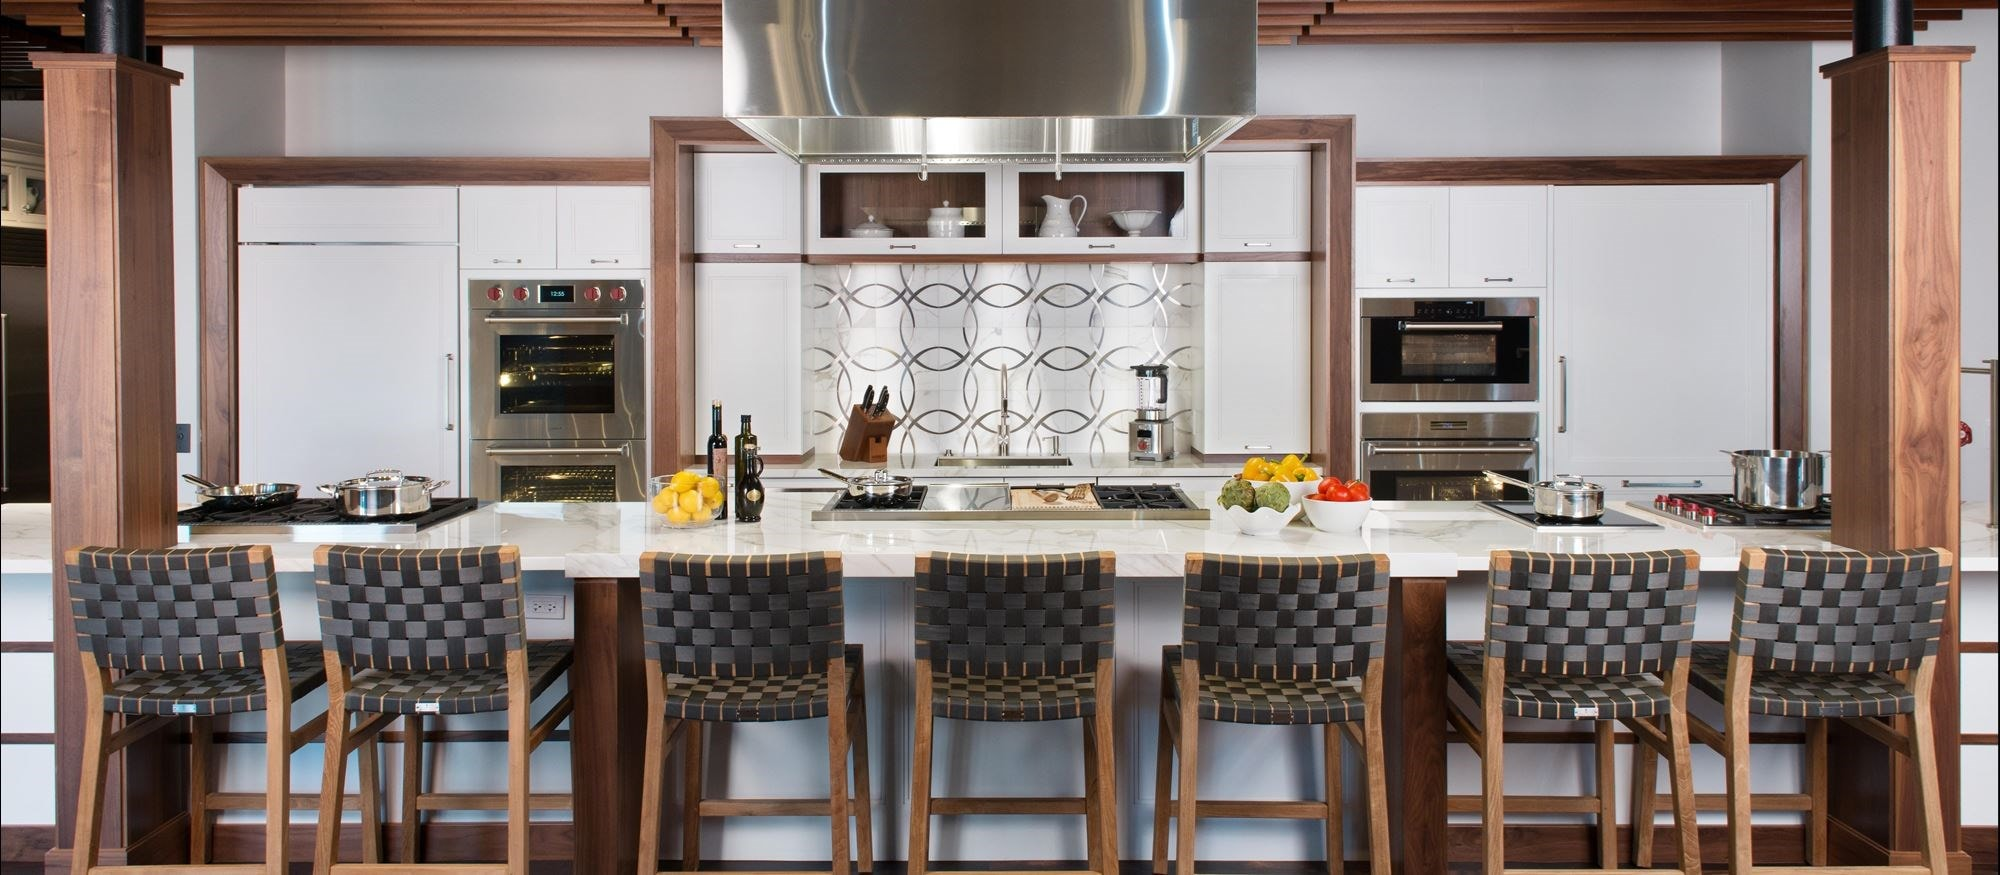 Explore ideas for your new kitchen at Sub-Zero, Wolf and Cove Showroom in Boston, Massachusetts